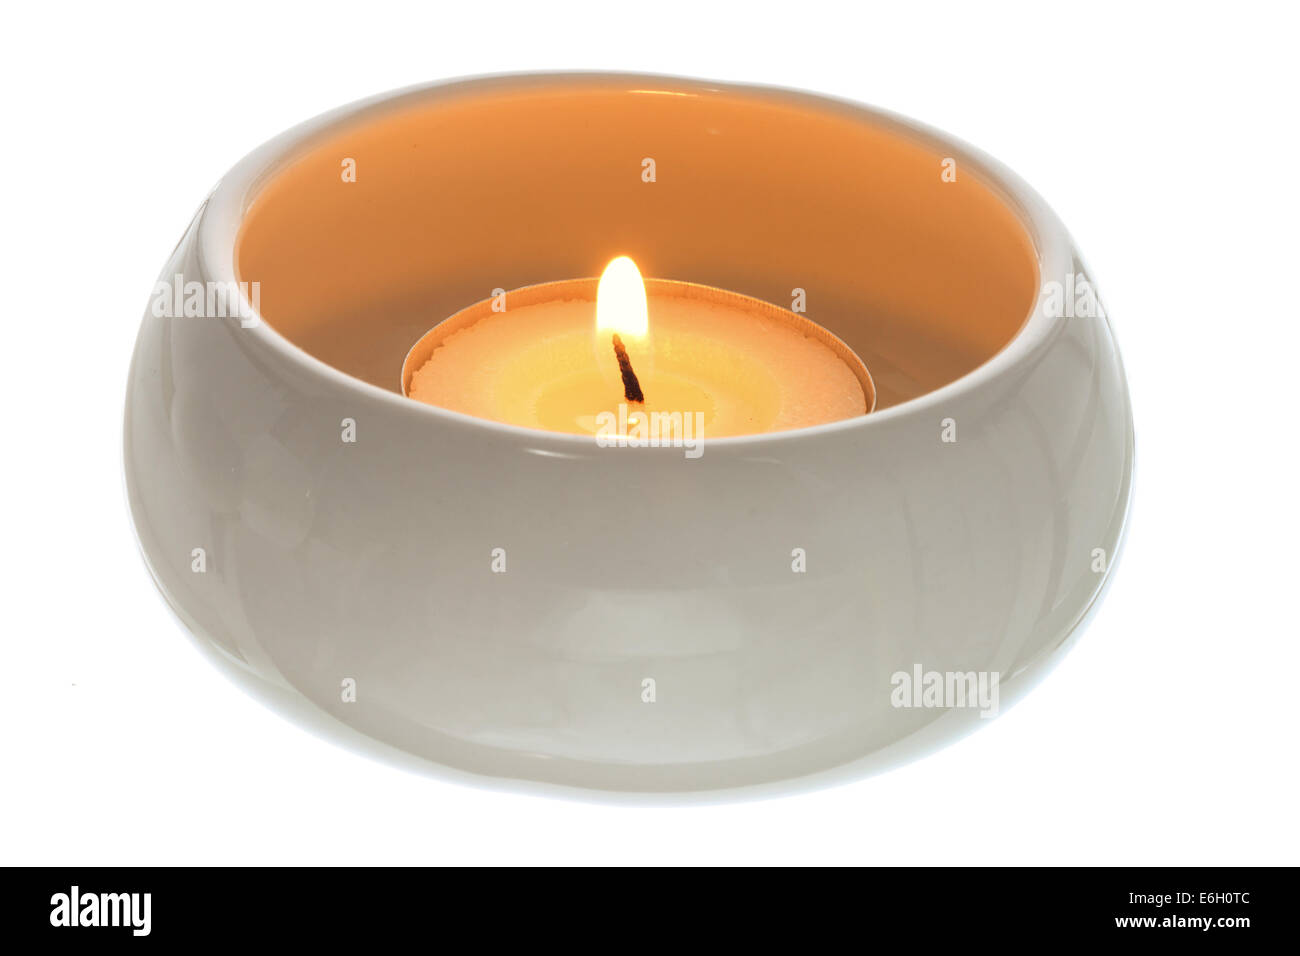 Candle - Stock Image